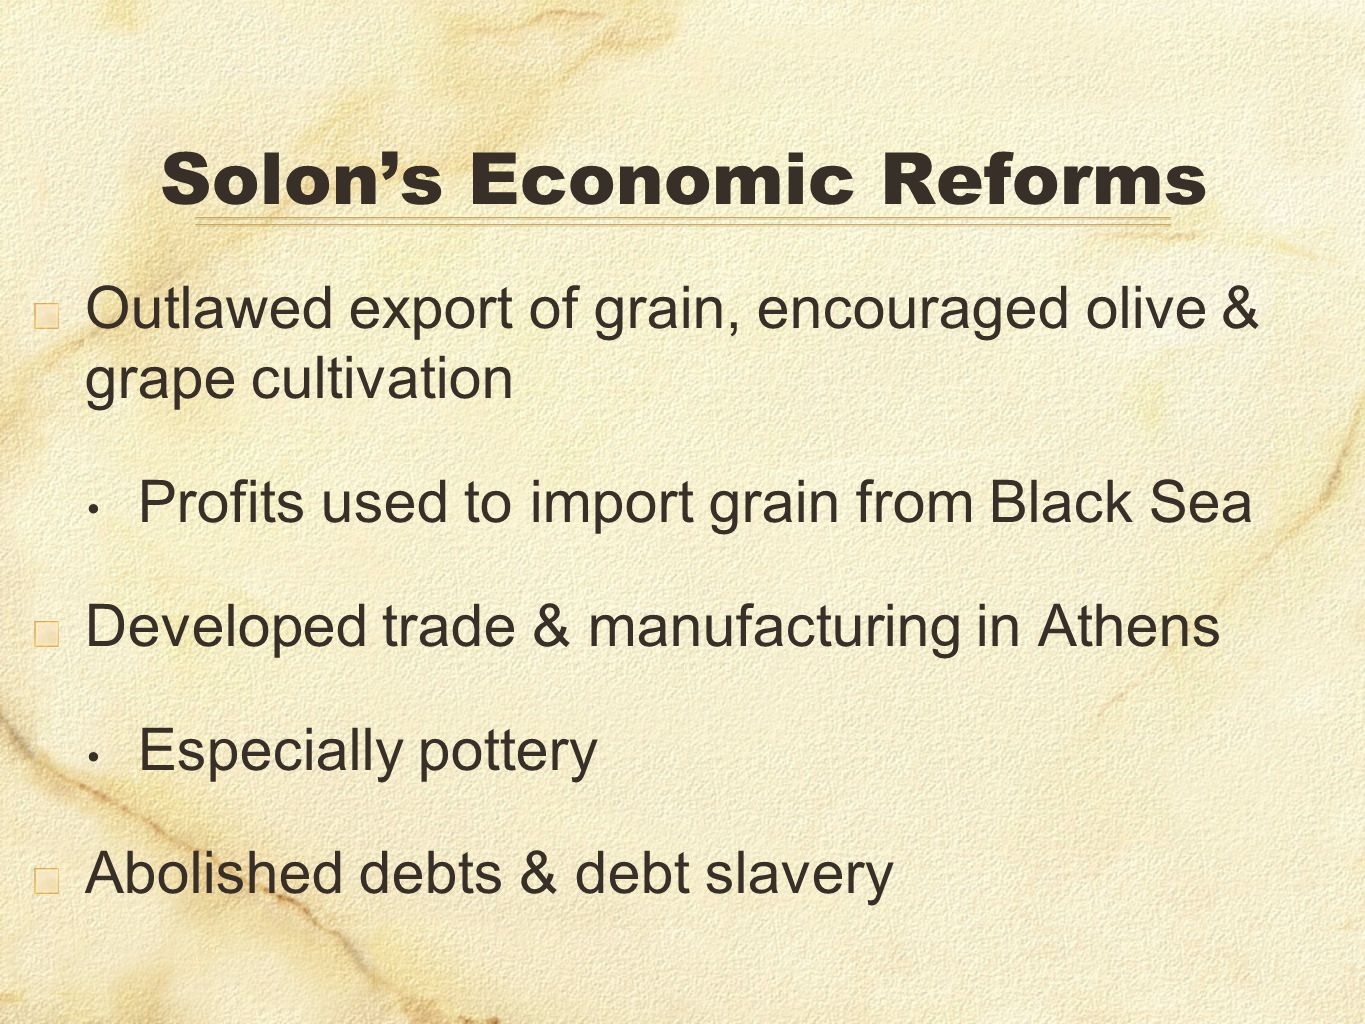 Solon's Economic Reforms